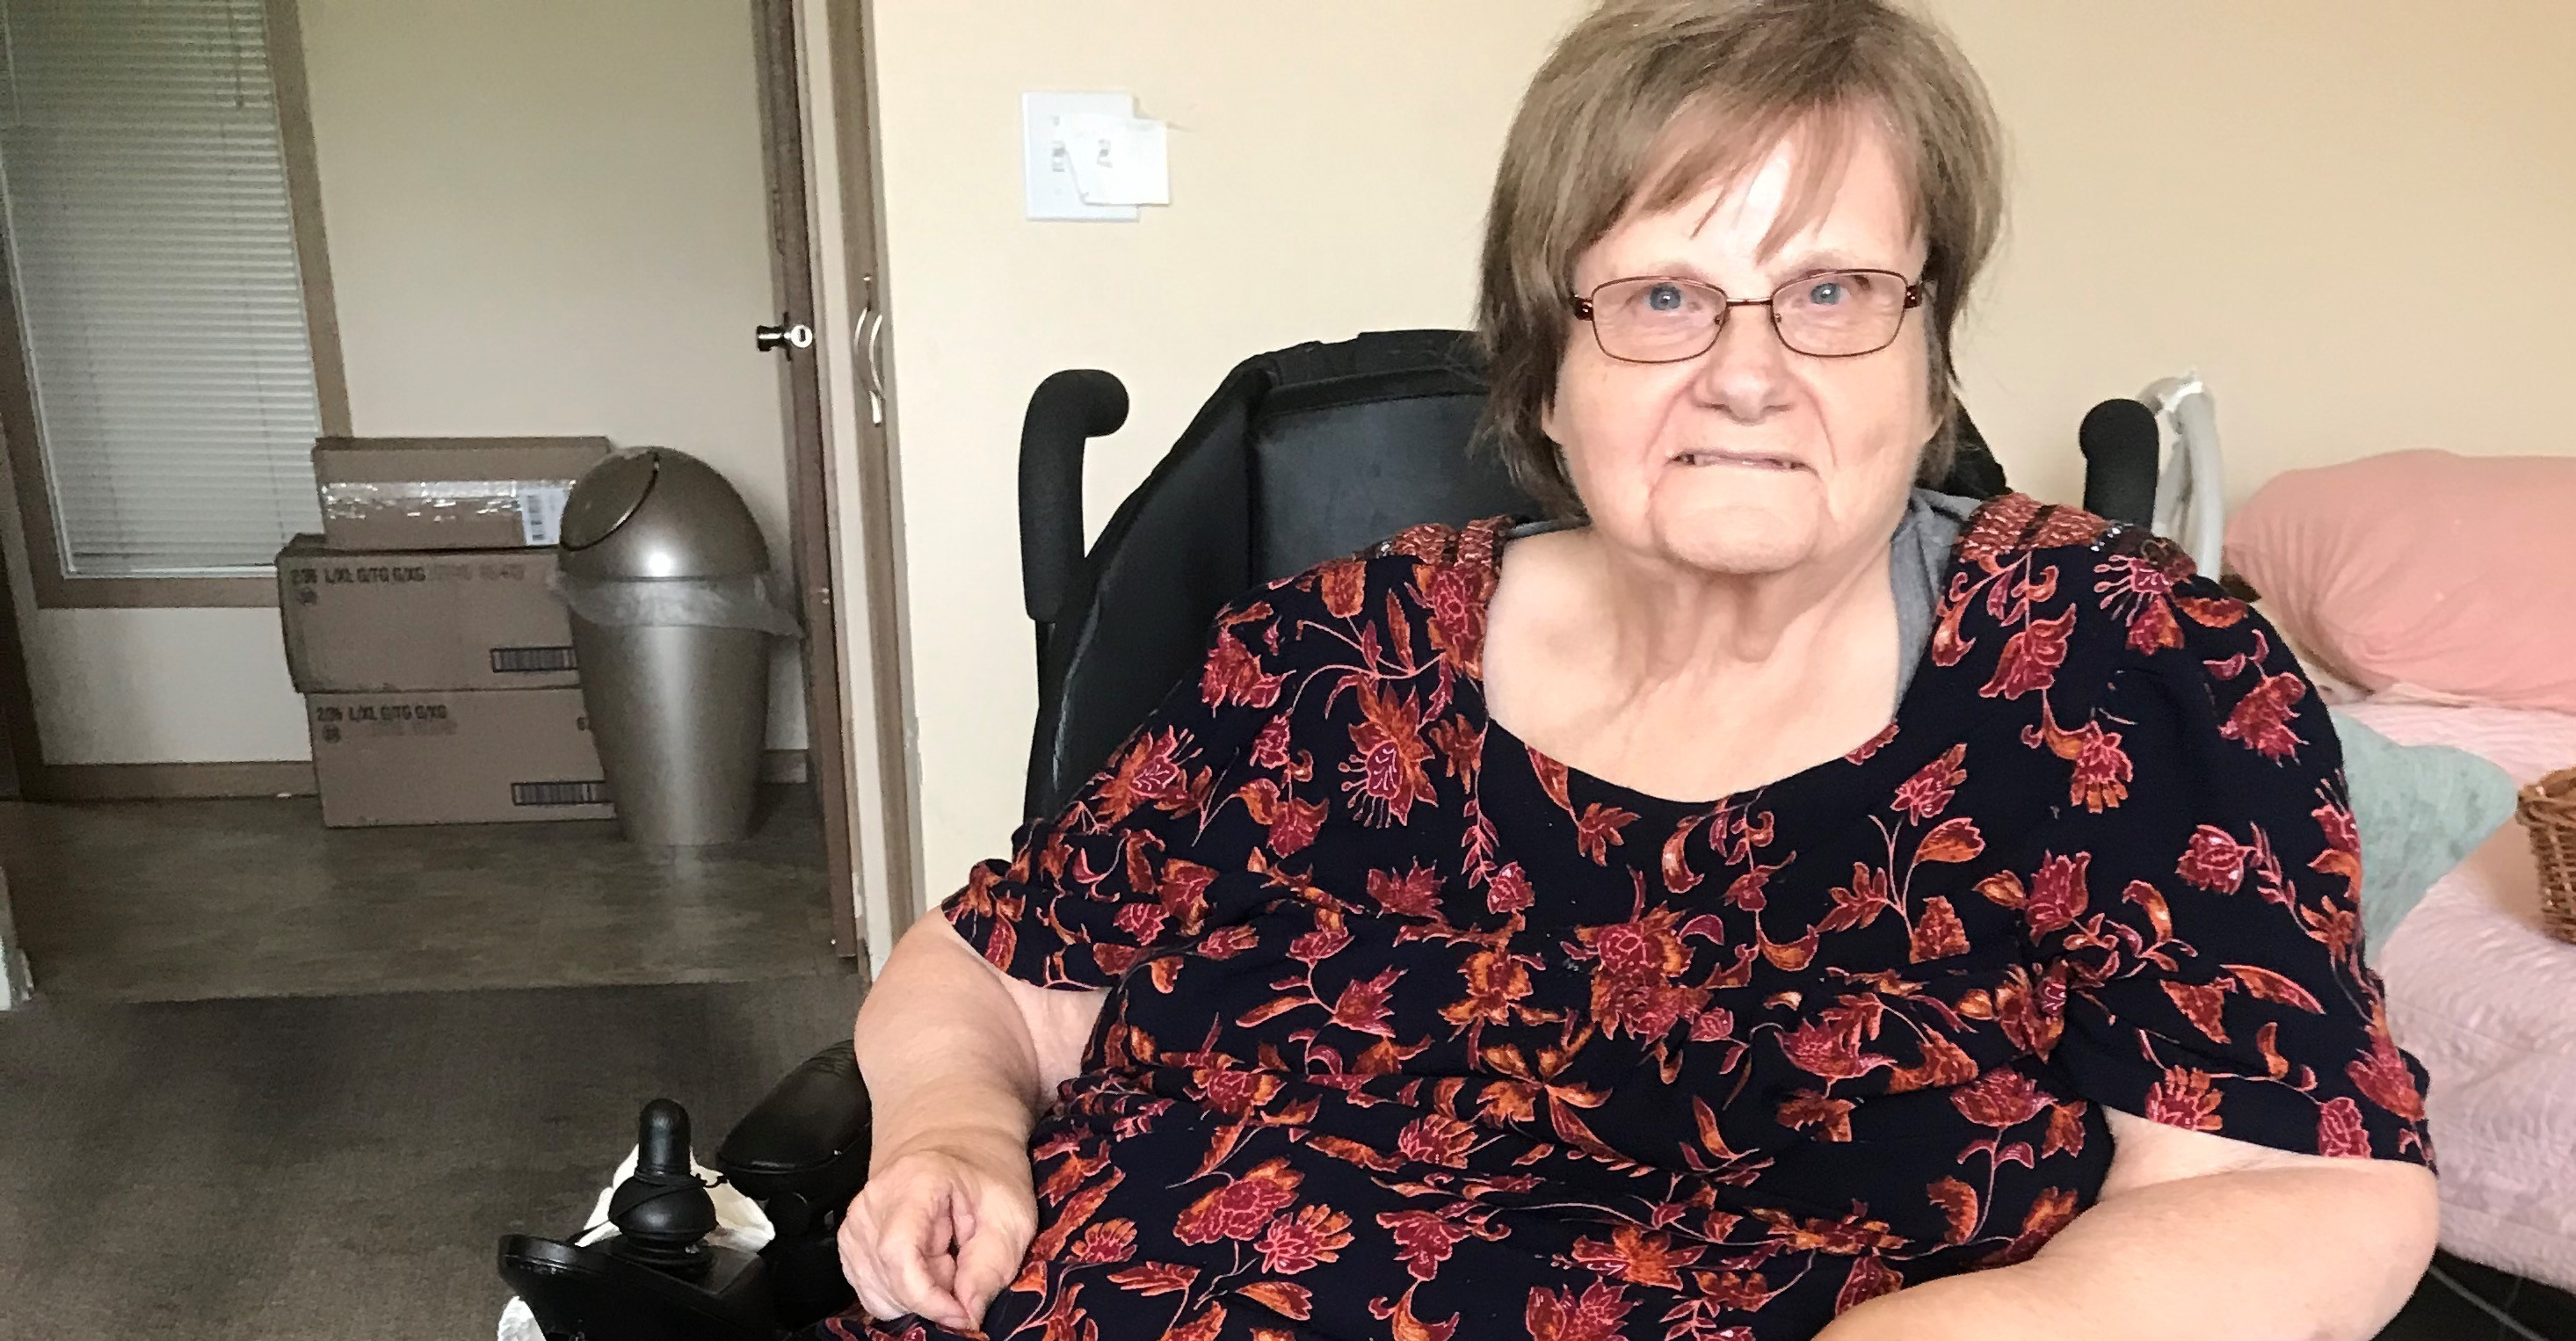 Meet one of the oldest people living with spina bifida: Janice Rovick's inspiring story